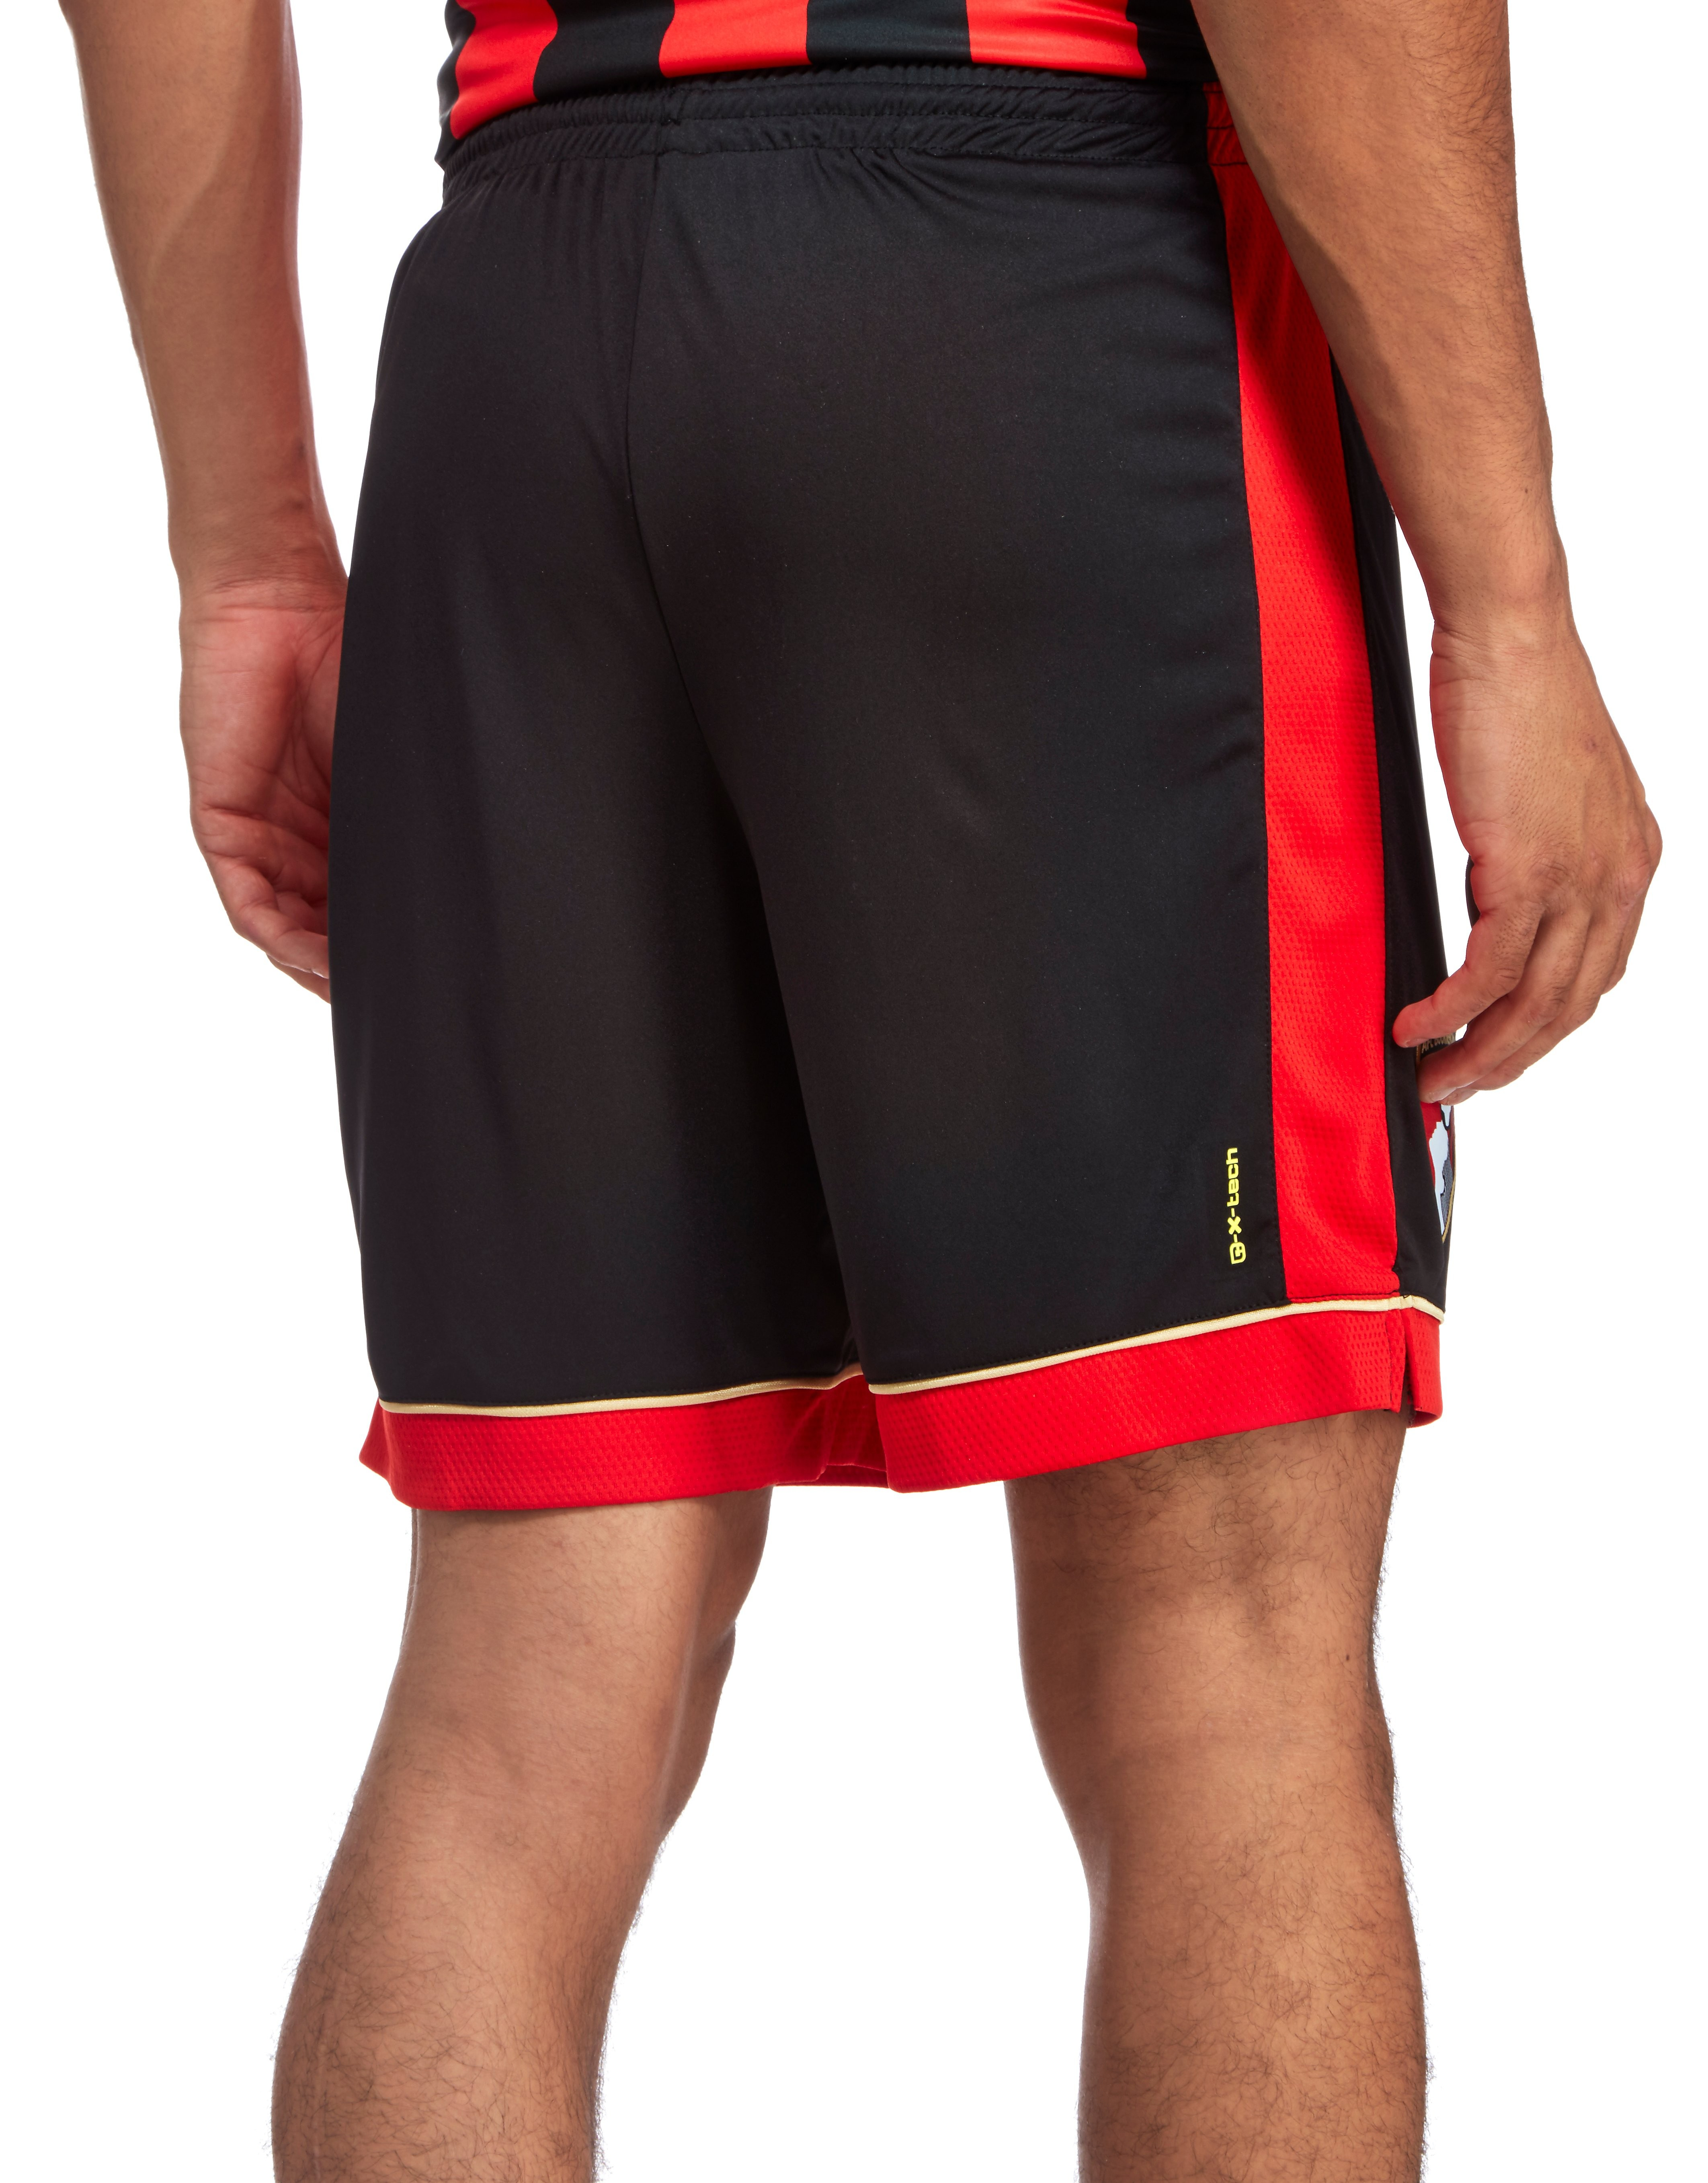 JD AFC Bournemouth 2016/17 Home Shorts